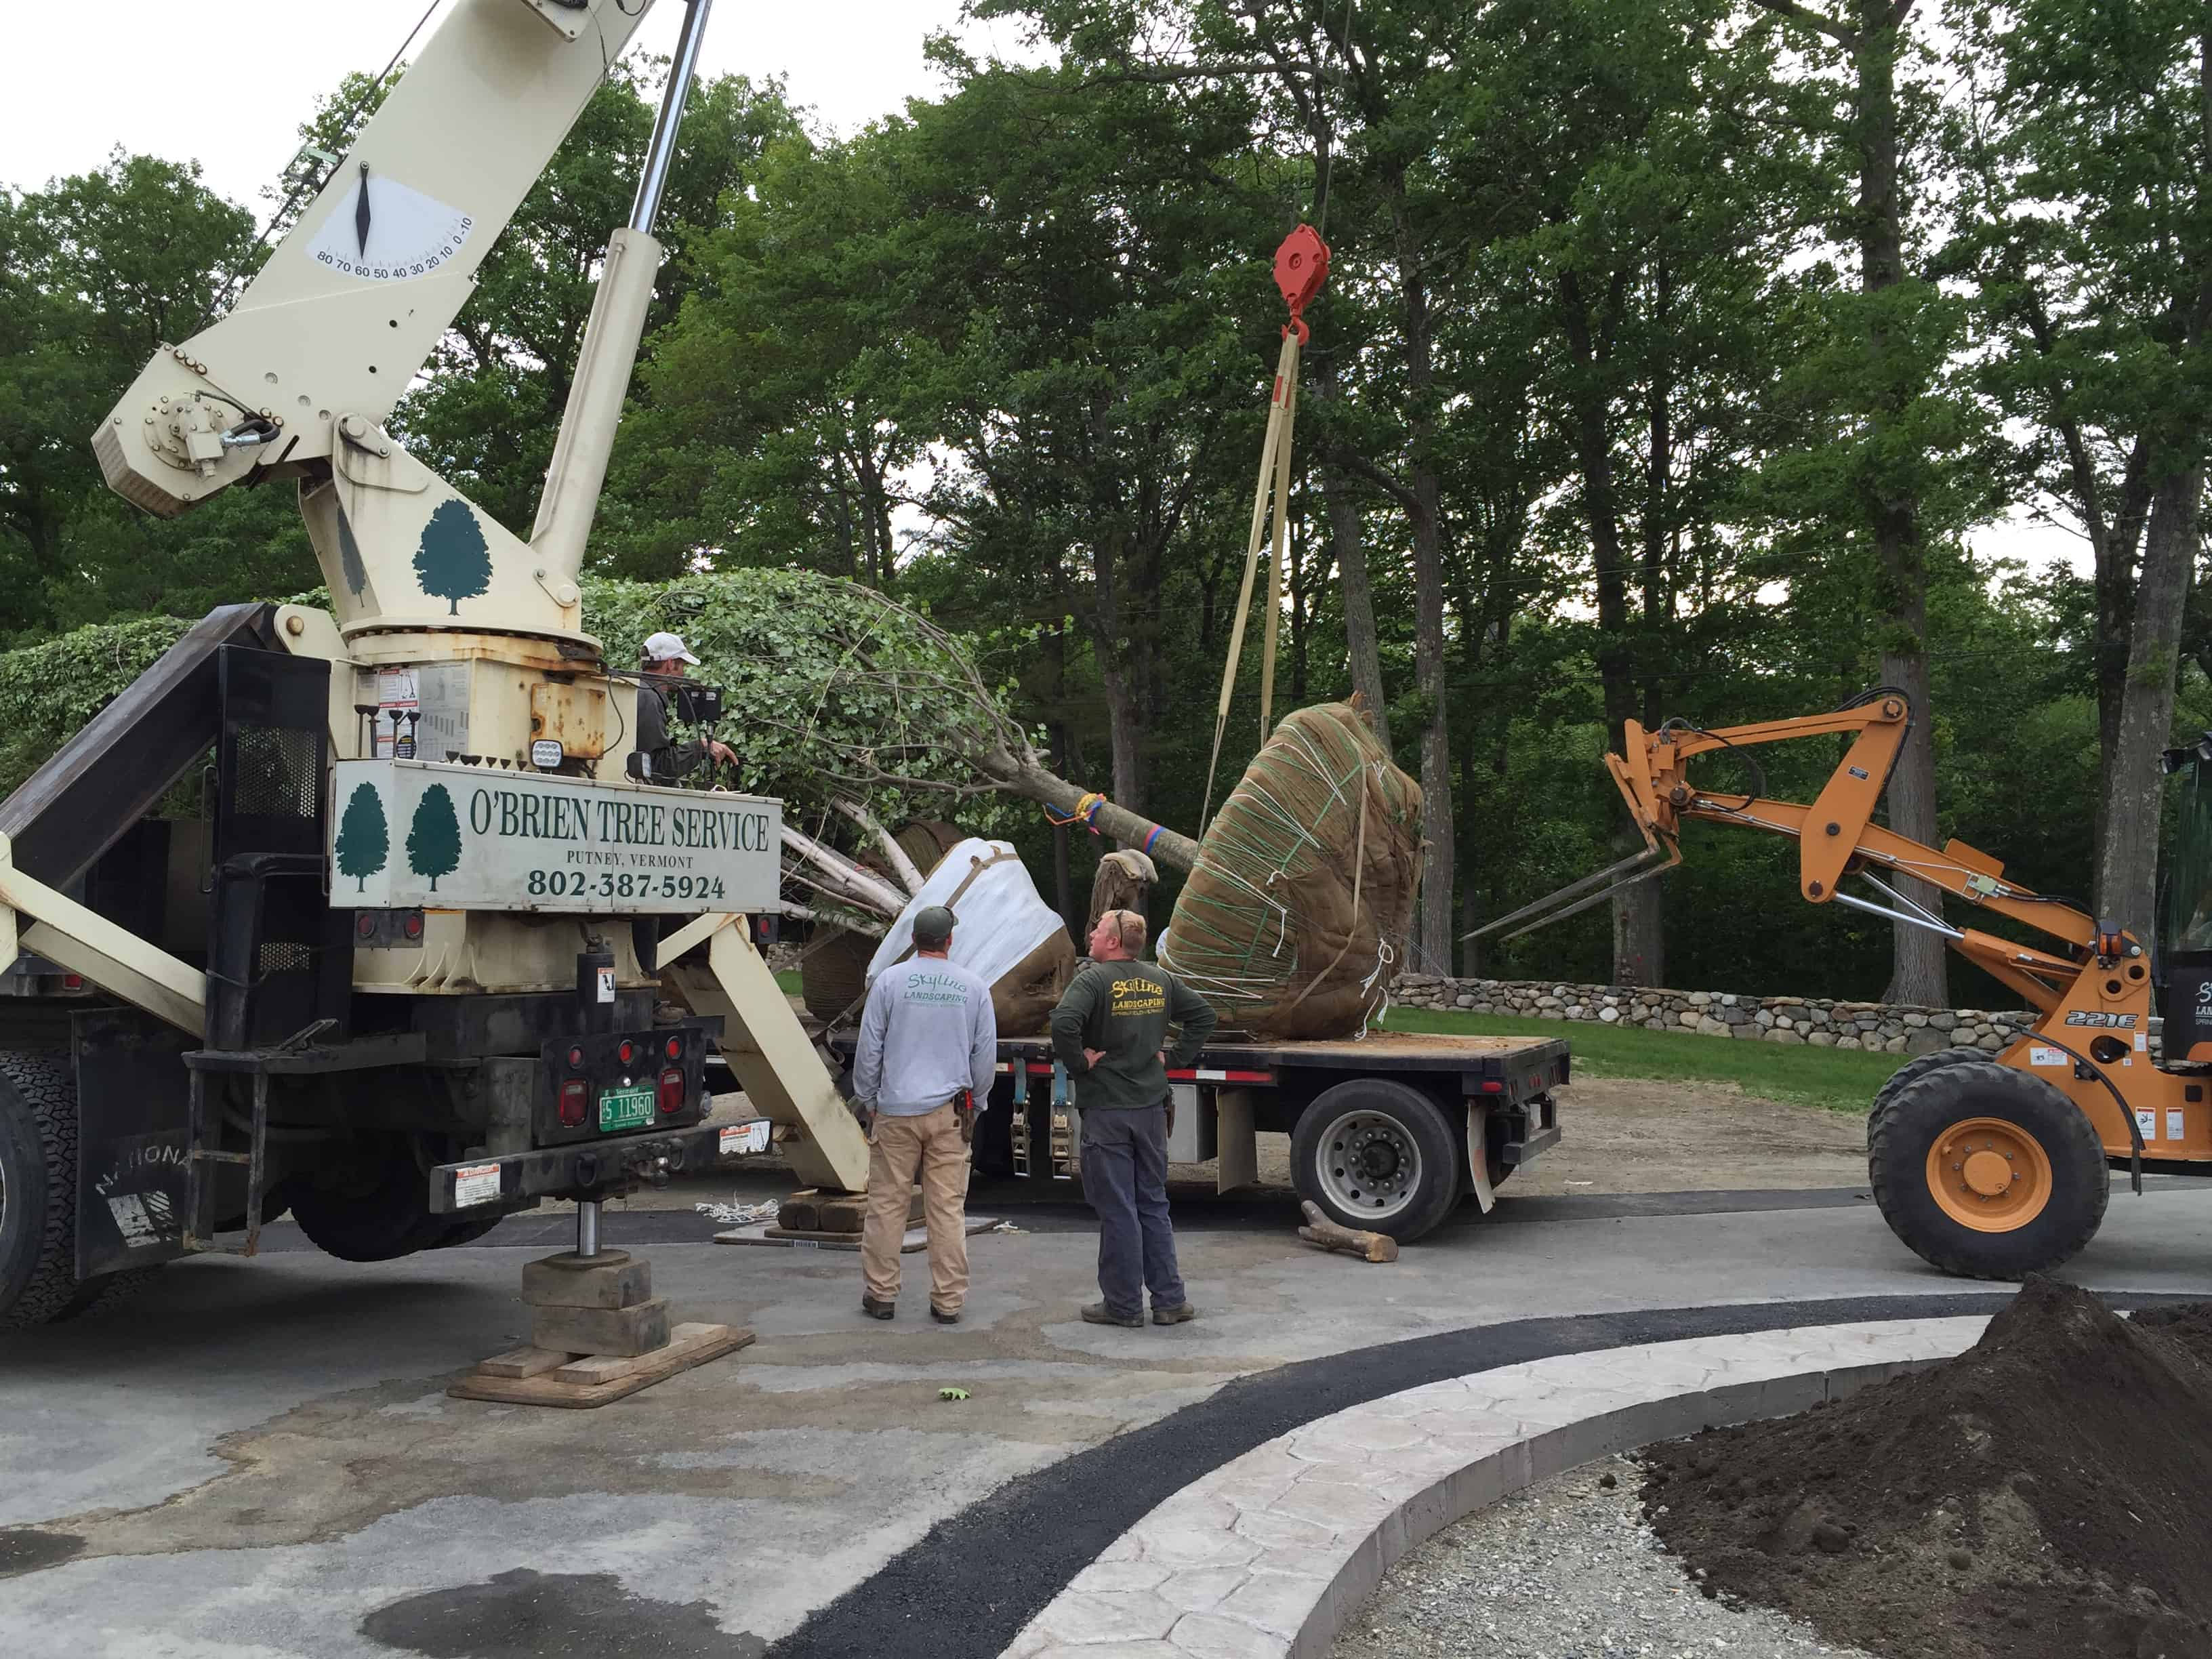 A crane and forklift were required to lift and move each tree.